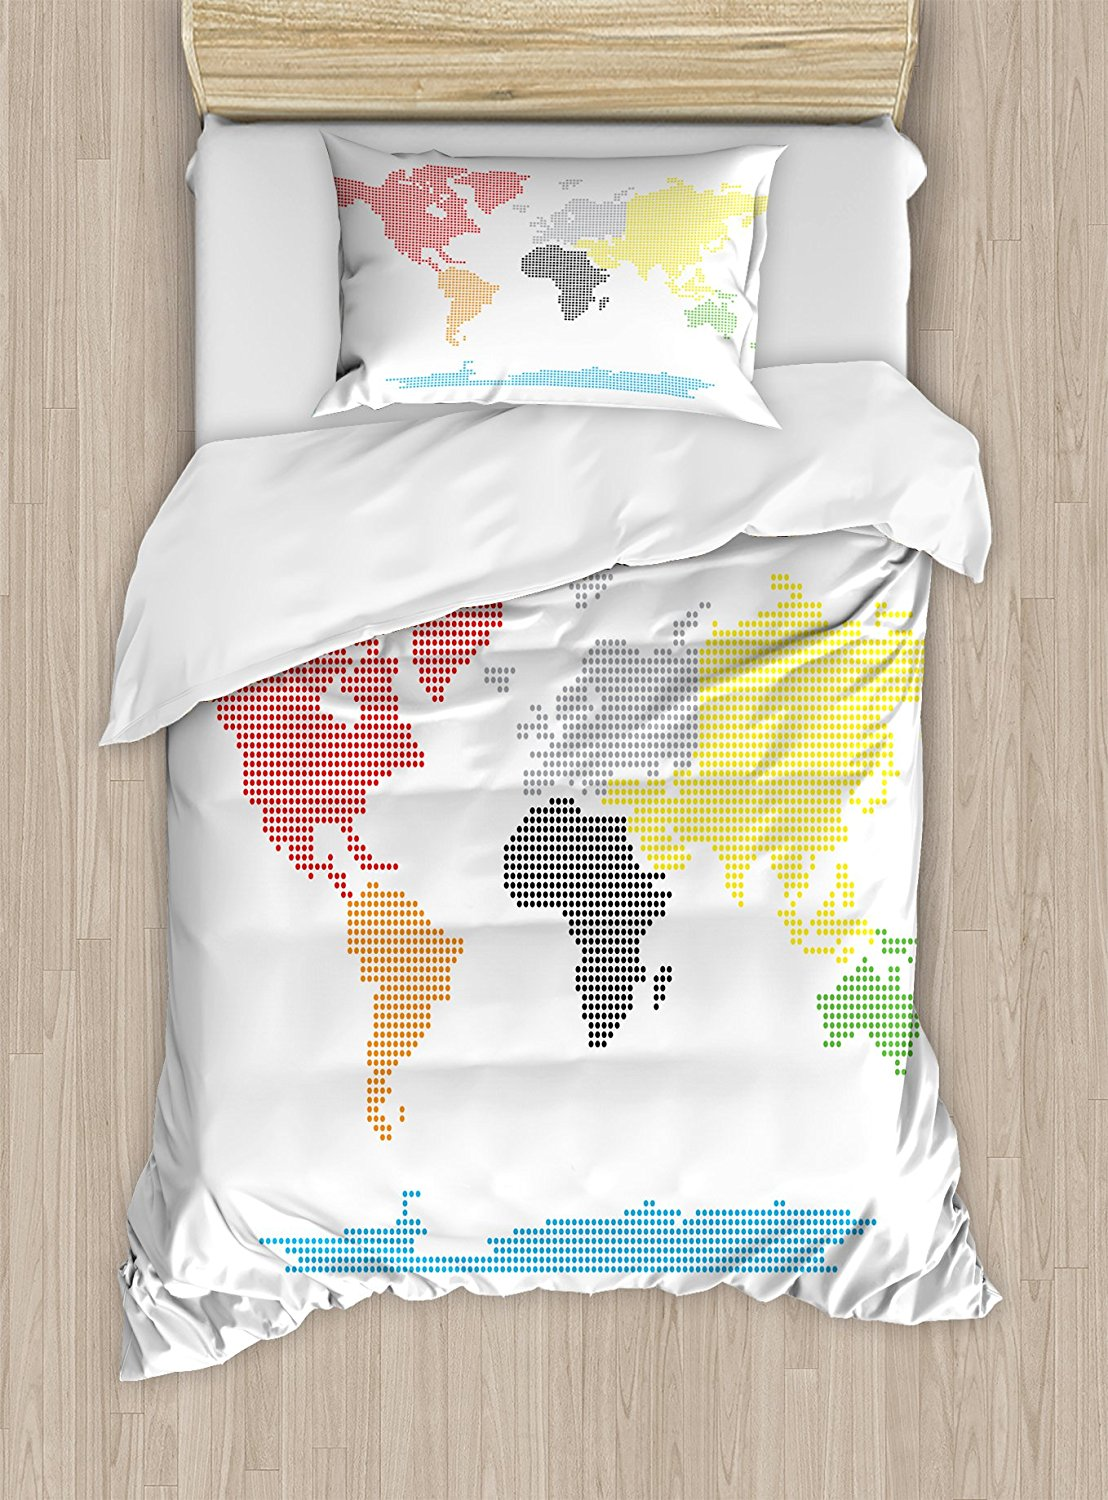 Map duvet cover set artistic vintage world map with watercolor world map duvet cover set digital dotted colorful world map on clear background mod graphic artsy gumiabroncs Image collections